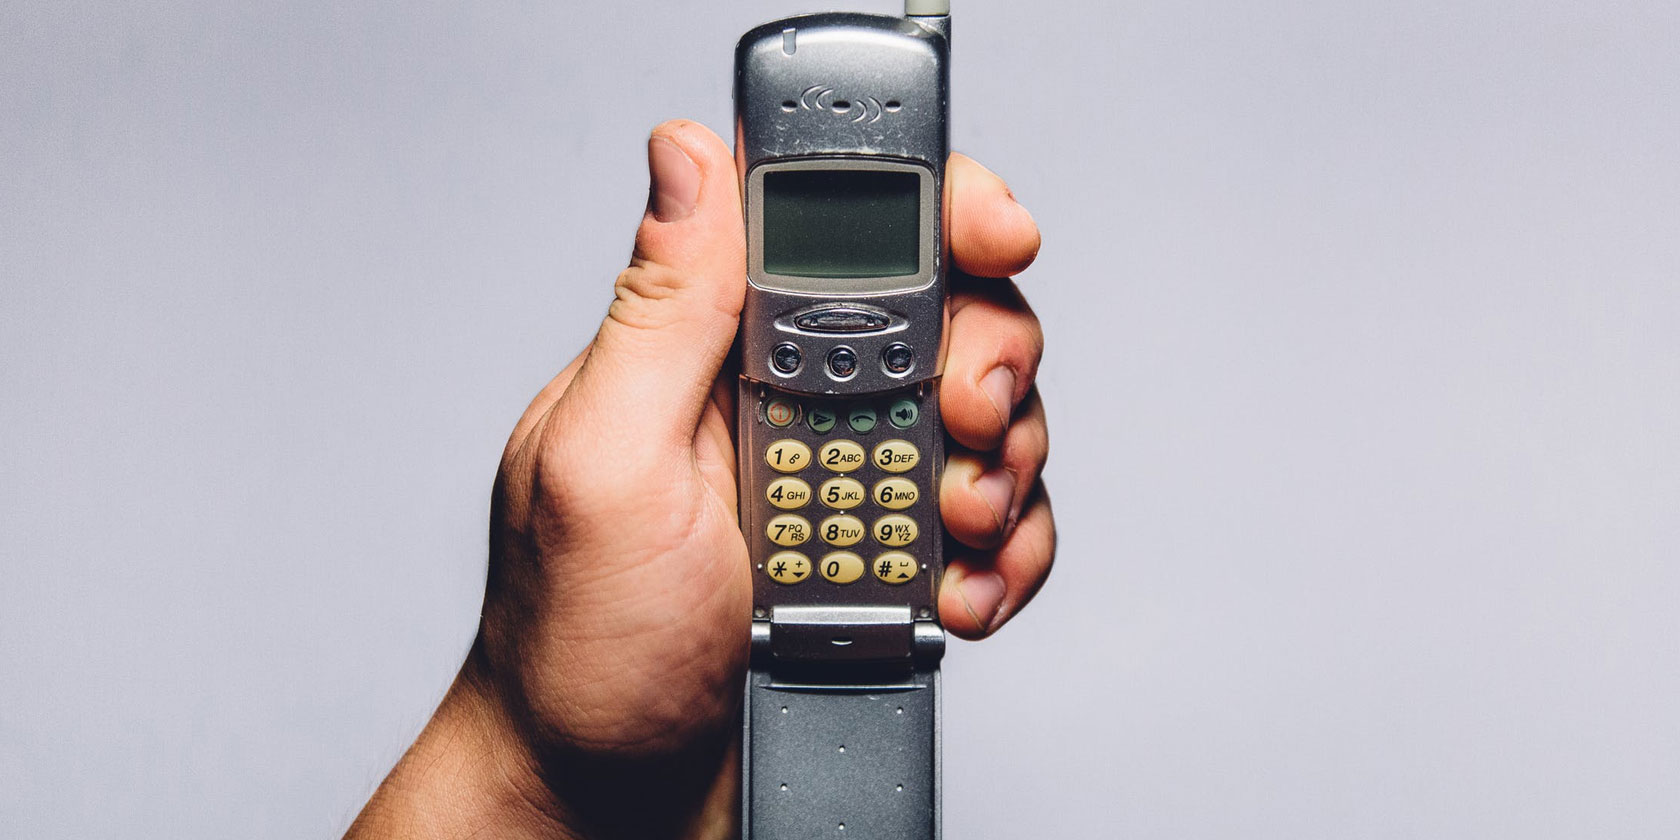 used-dumbphone-ditched